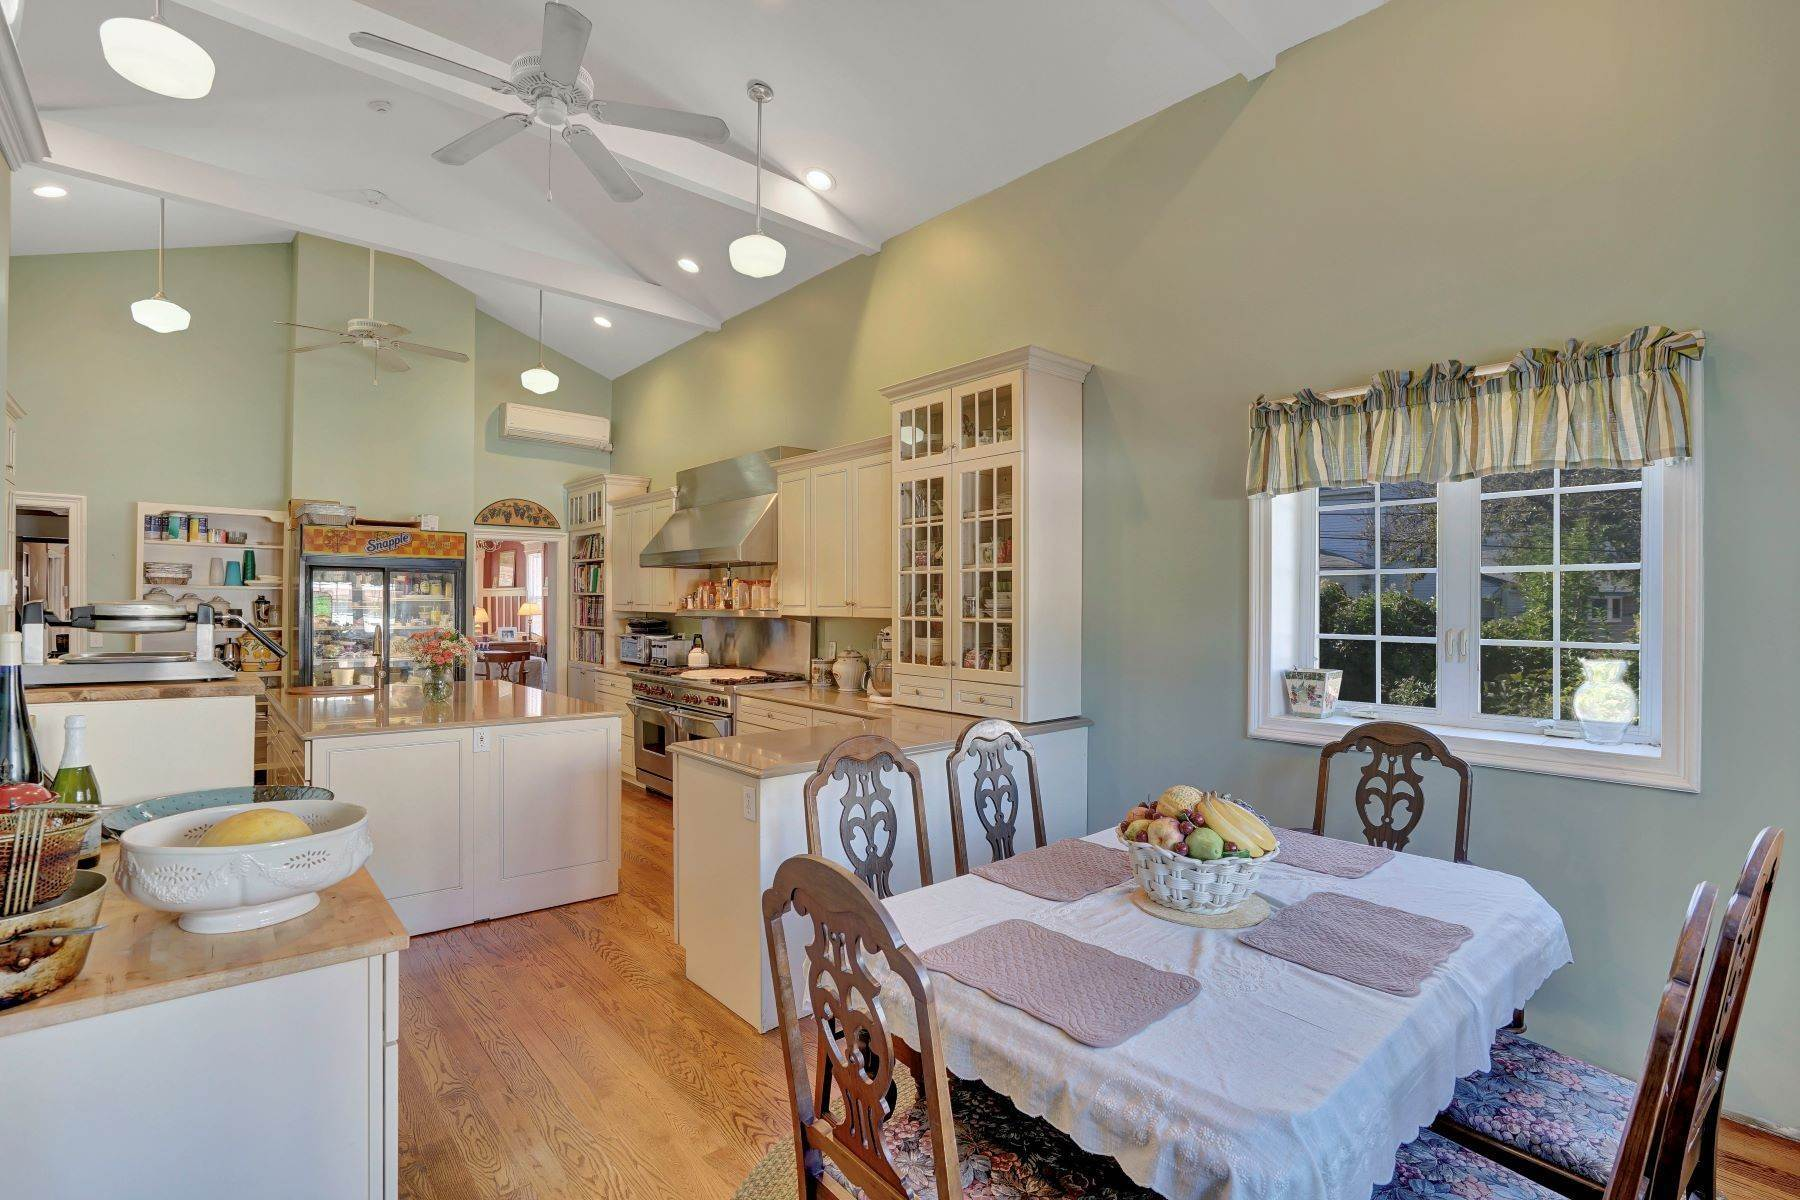 22. Single Family Homes for Sale at Bed and Breakfast in Bradley 204 Third Avenue Bradley Beach, New Jersey 07720 United States